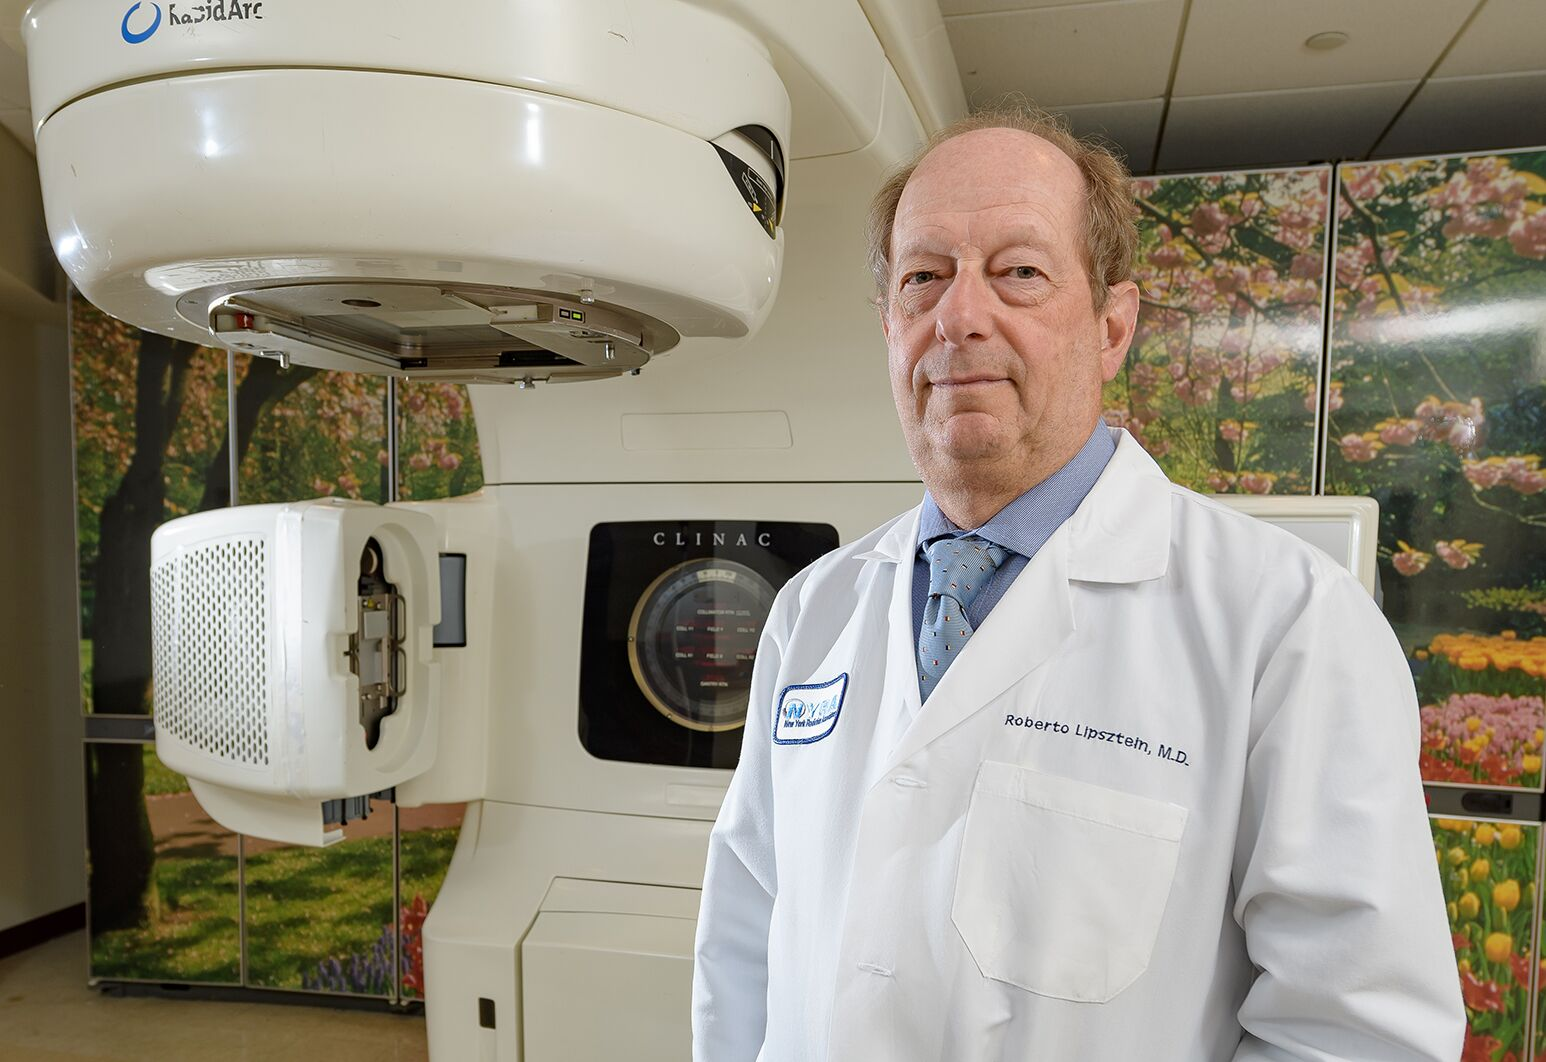 The Queens Radiation Center will be led by Roberto Lipsztein, MD, who has more than 35 years of experience treating thousands of patients.